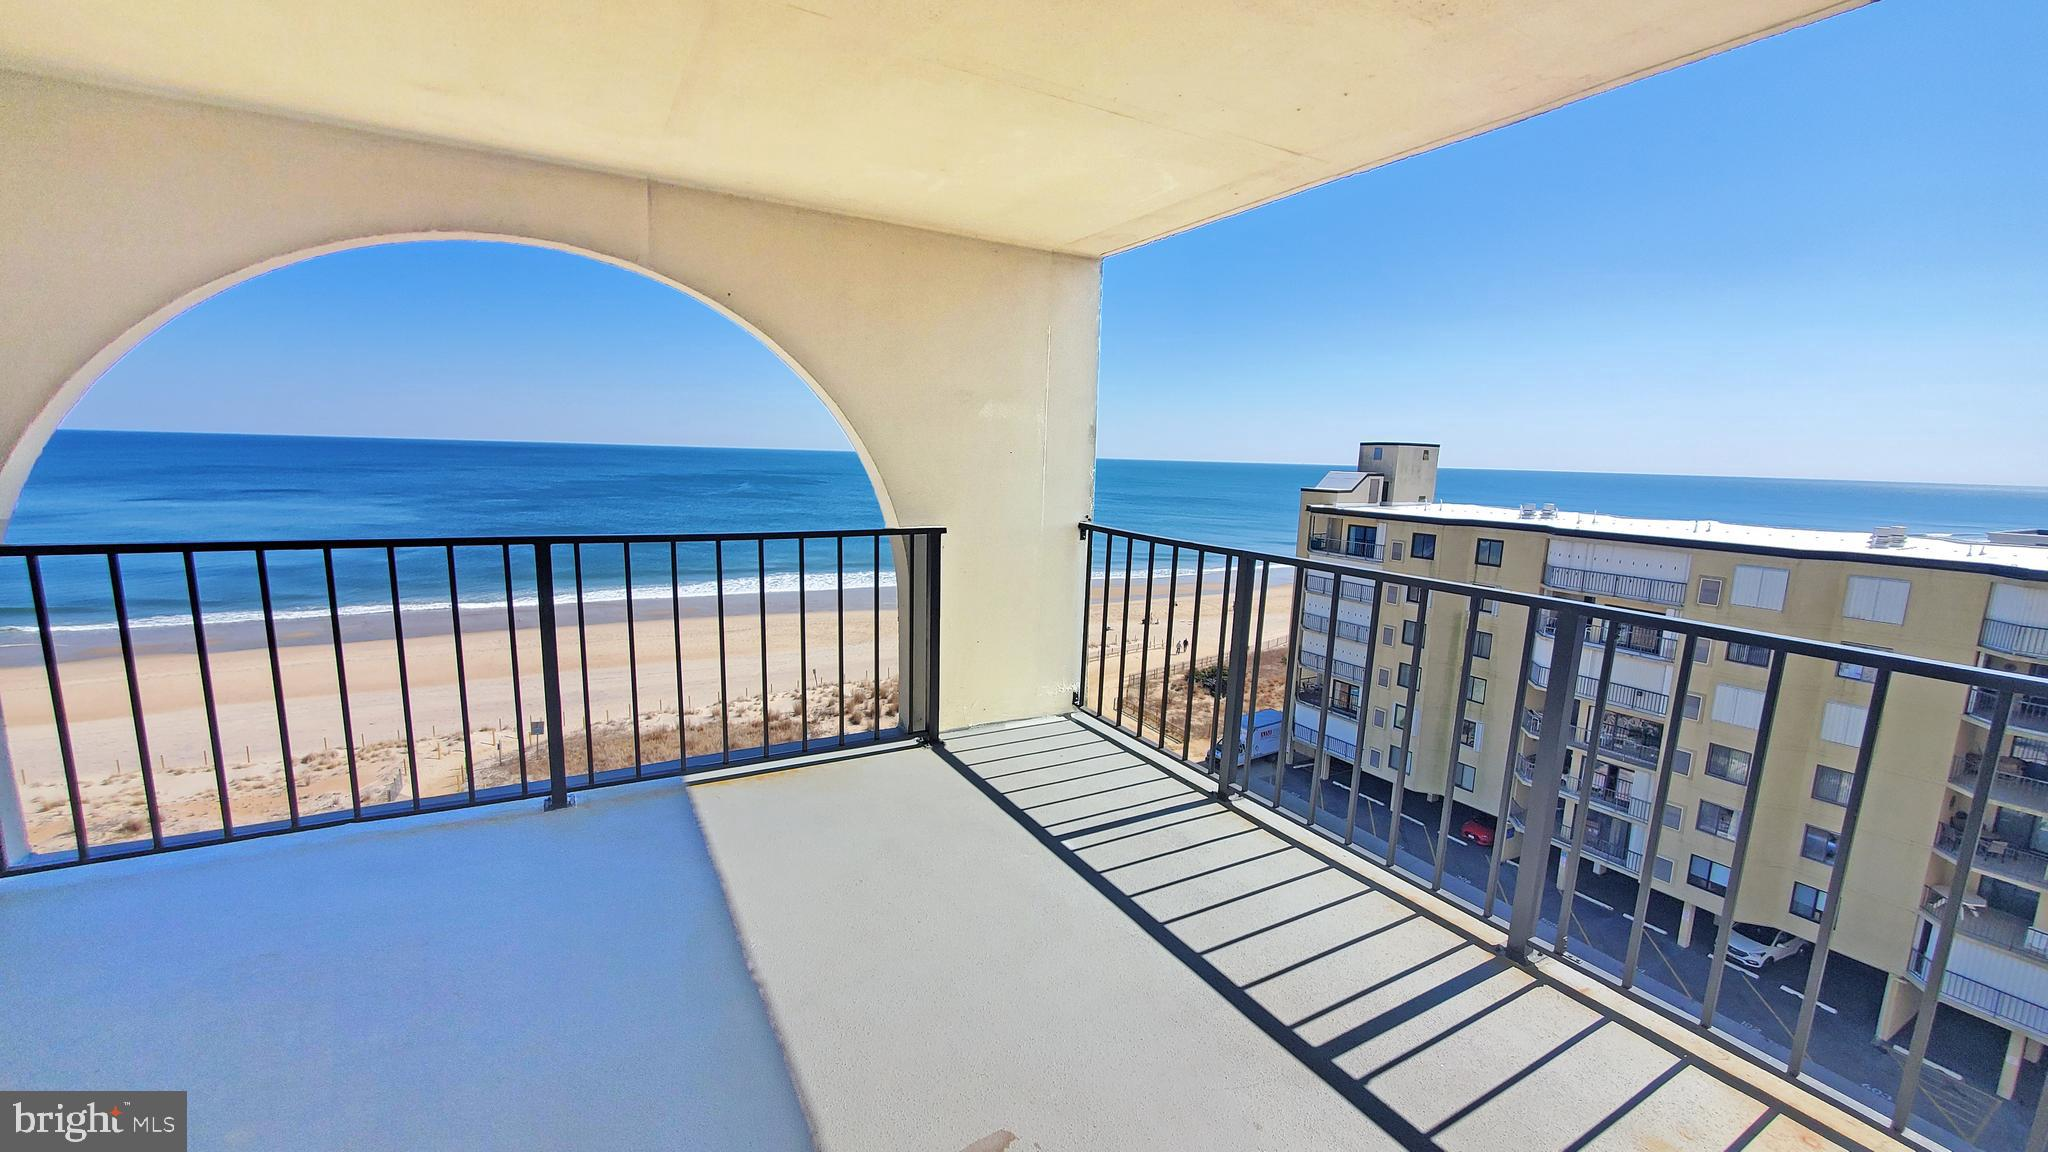 Ocean Views from every room is what you get in this Amazing south side DIRECT OCEANFRONT 2-bedroom 2-bathroom condo with multiple decks!  The second you walk in the condo you notice all the natural light, the additional sq ft and amazing Ocean/Bay/City skyline views! You are surrounded by natural light and the Spacious open floor plan. Spend your days on your covered oversized porch with room for entertaining and storage closet.  This unit has been well maintained with large living room, bar, full sized kitchen, and dining area.  Both bedrooms have views of the ocean with tiled floors and fully tiled bathrooms.  The building offers, secured access, three elevators, private lobby, onsite management, outdoor pool, oceanfront sundeck and shuffleboard.  Conveniently located close to shopping, restaurants, Ocean City Art league, tennis courts, dog park, entertainment, and grocery.  Call for a private showing today!